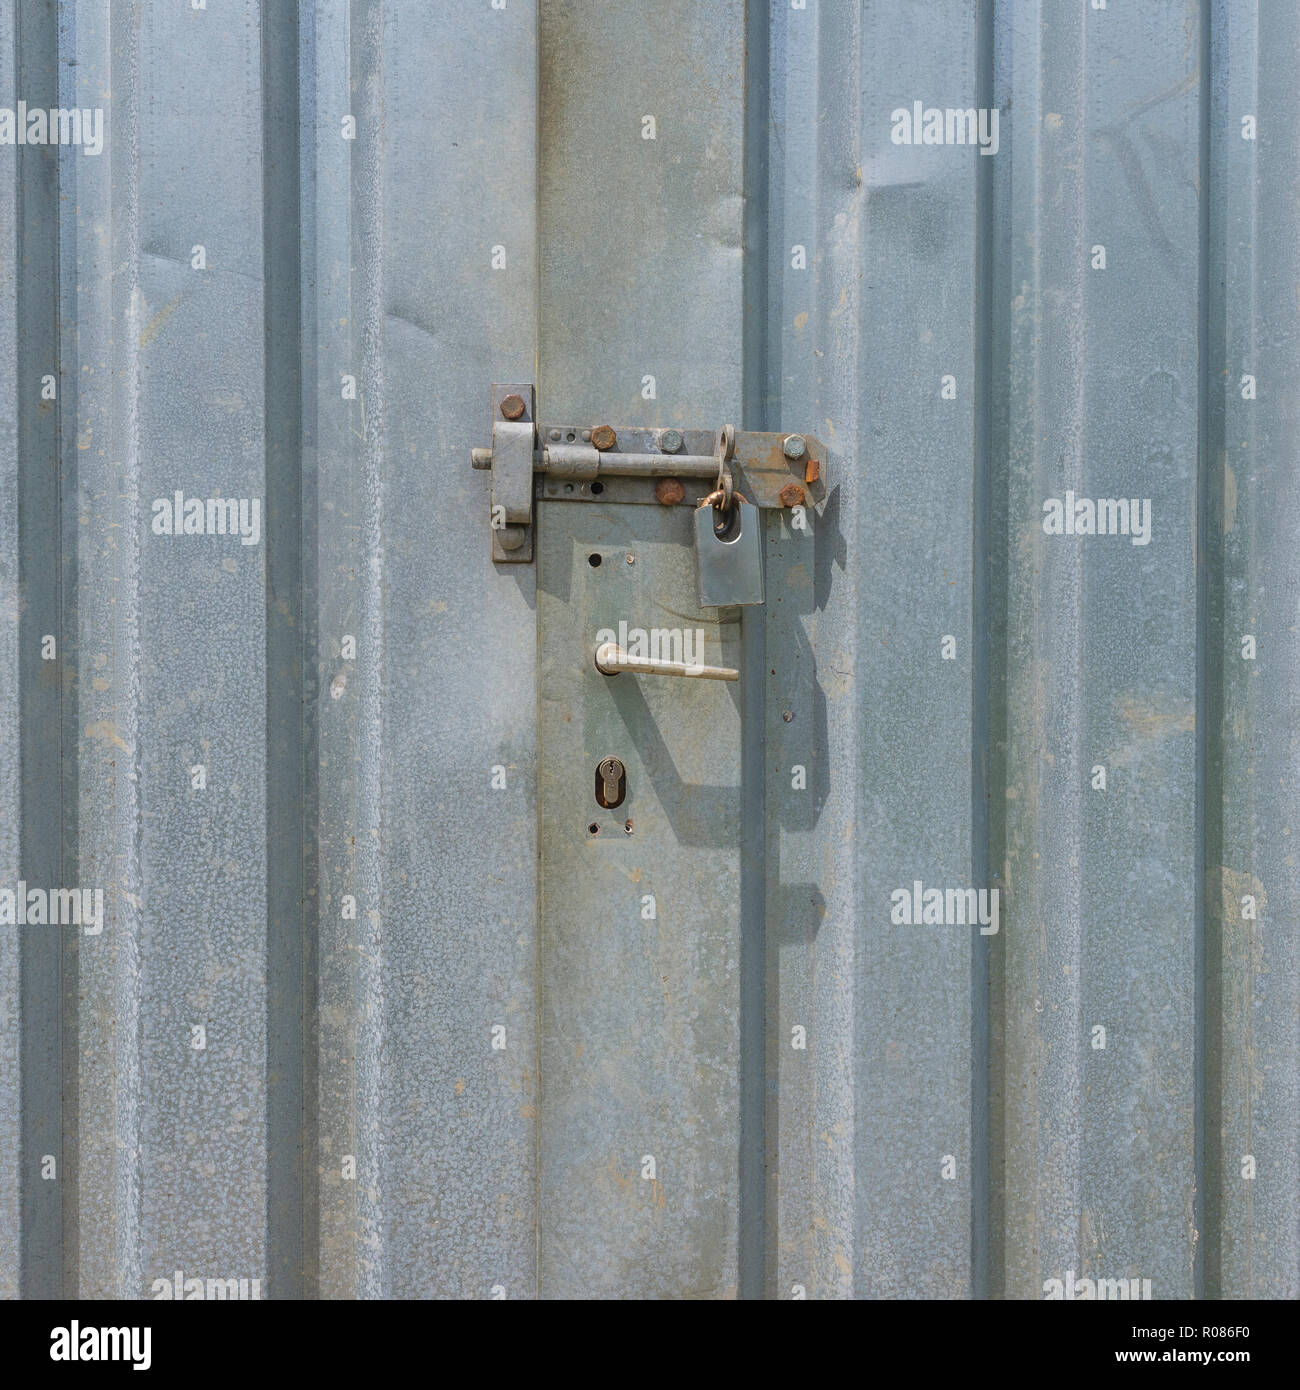 Padlocked doors of a lock-up self-storage shipping contained. Metaphor for secure, data security, virus protection etc. - Stock Image